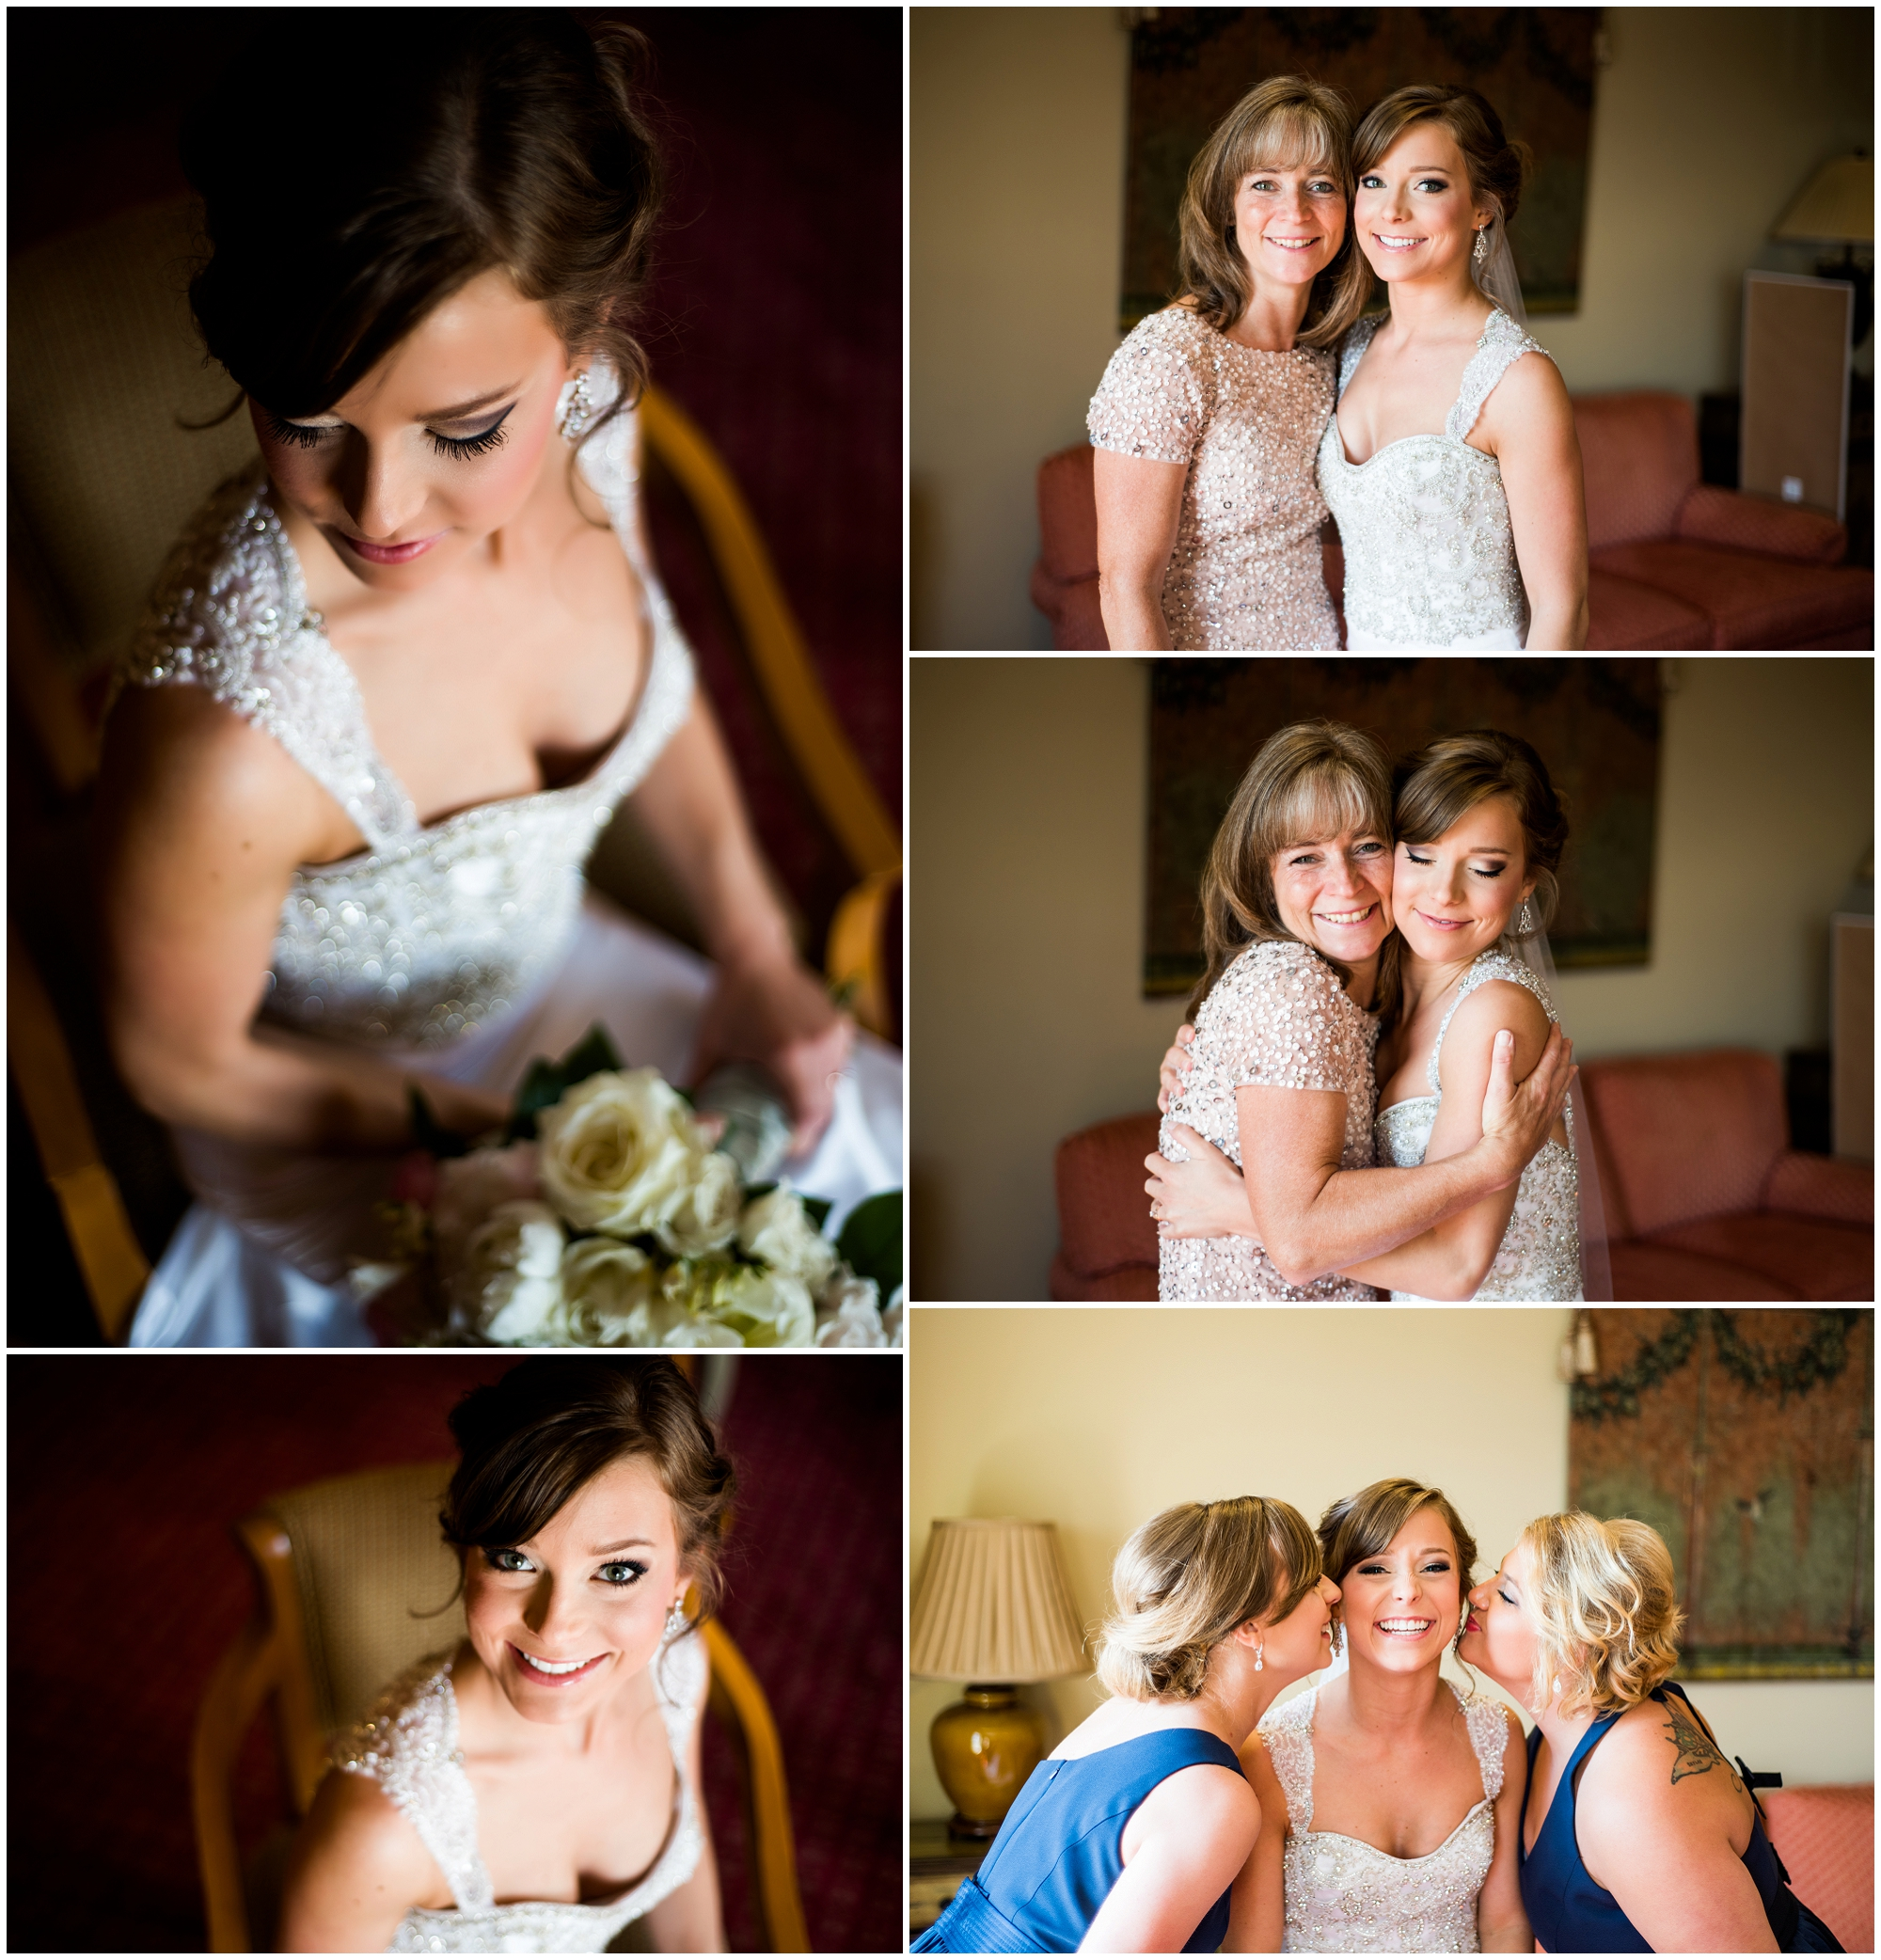 haley_zack_olde_stone_wedding-8876-Edit.jpg